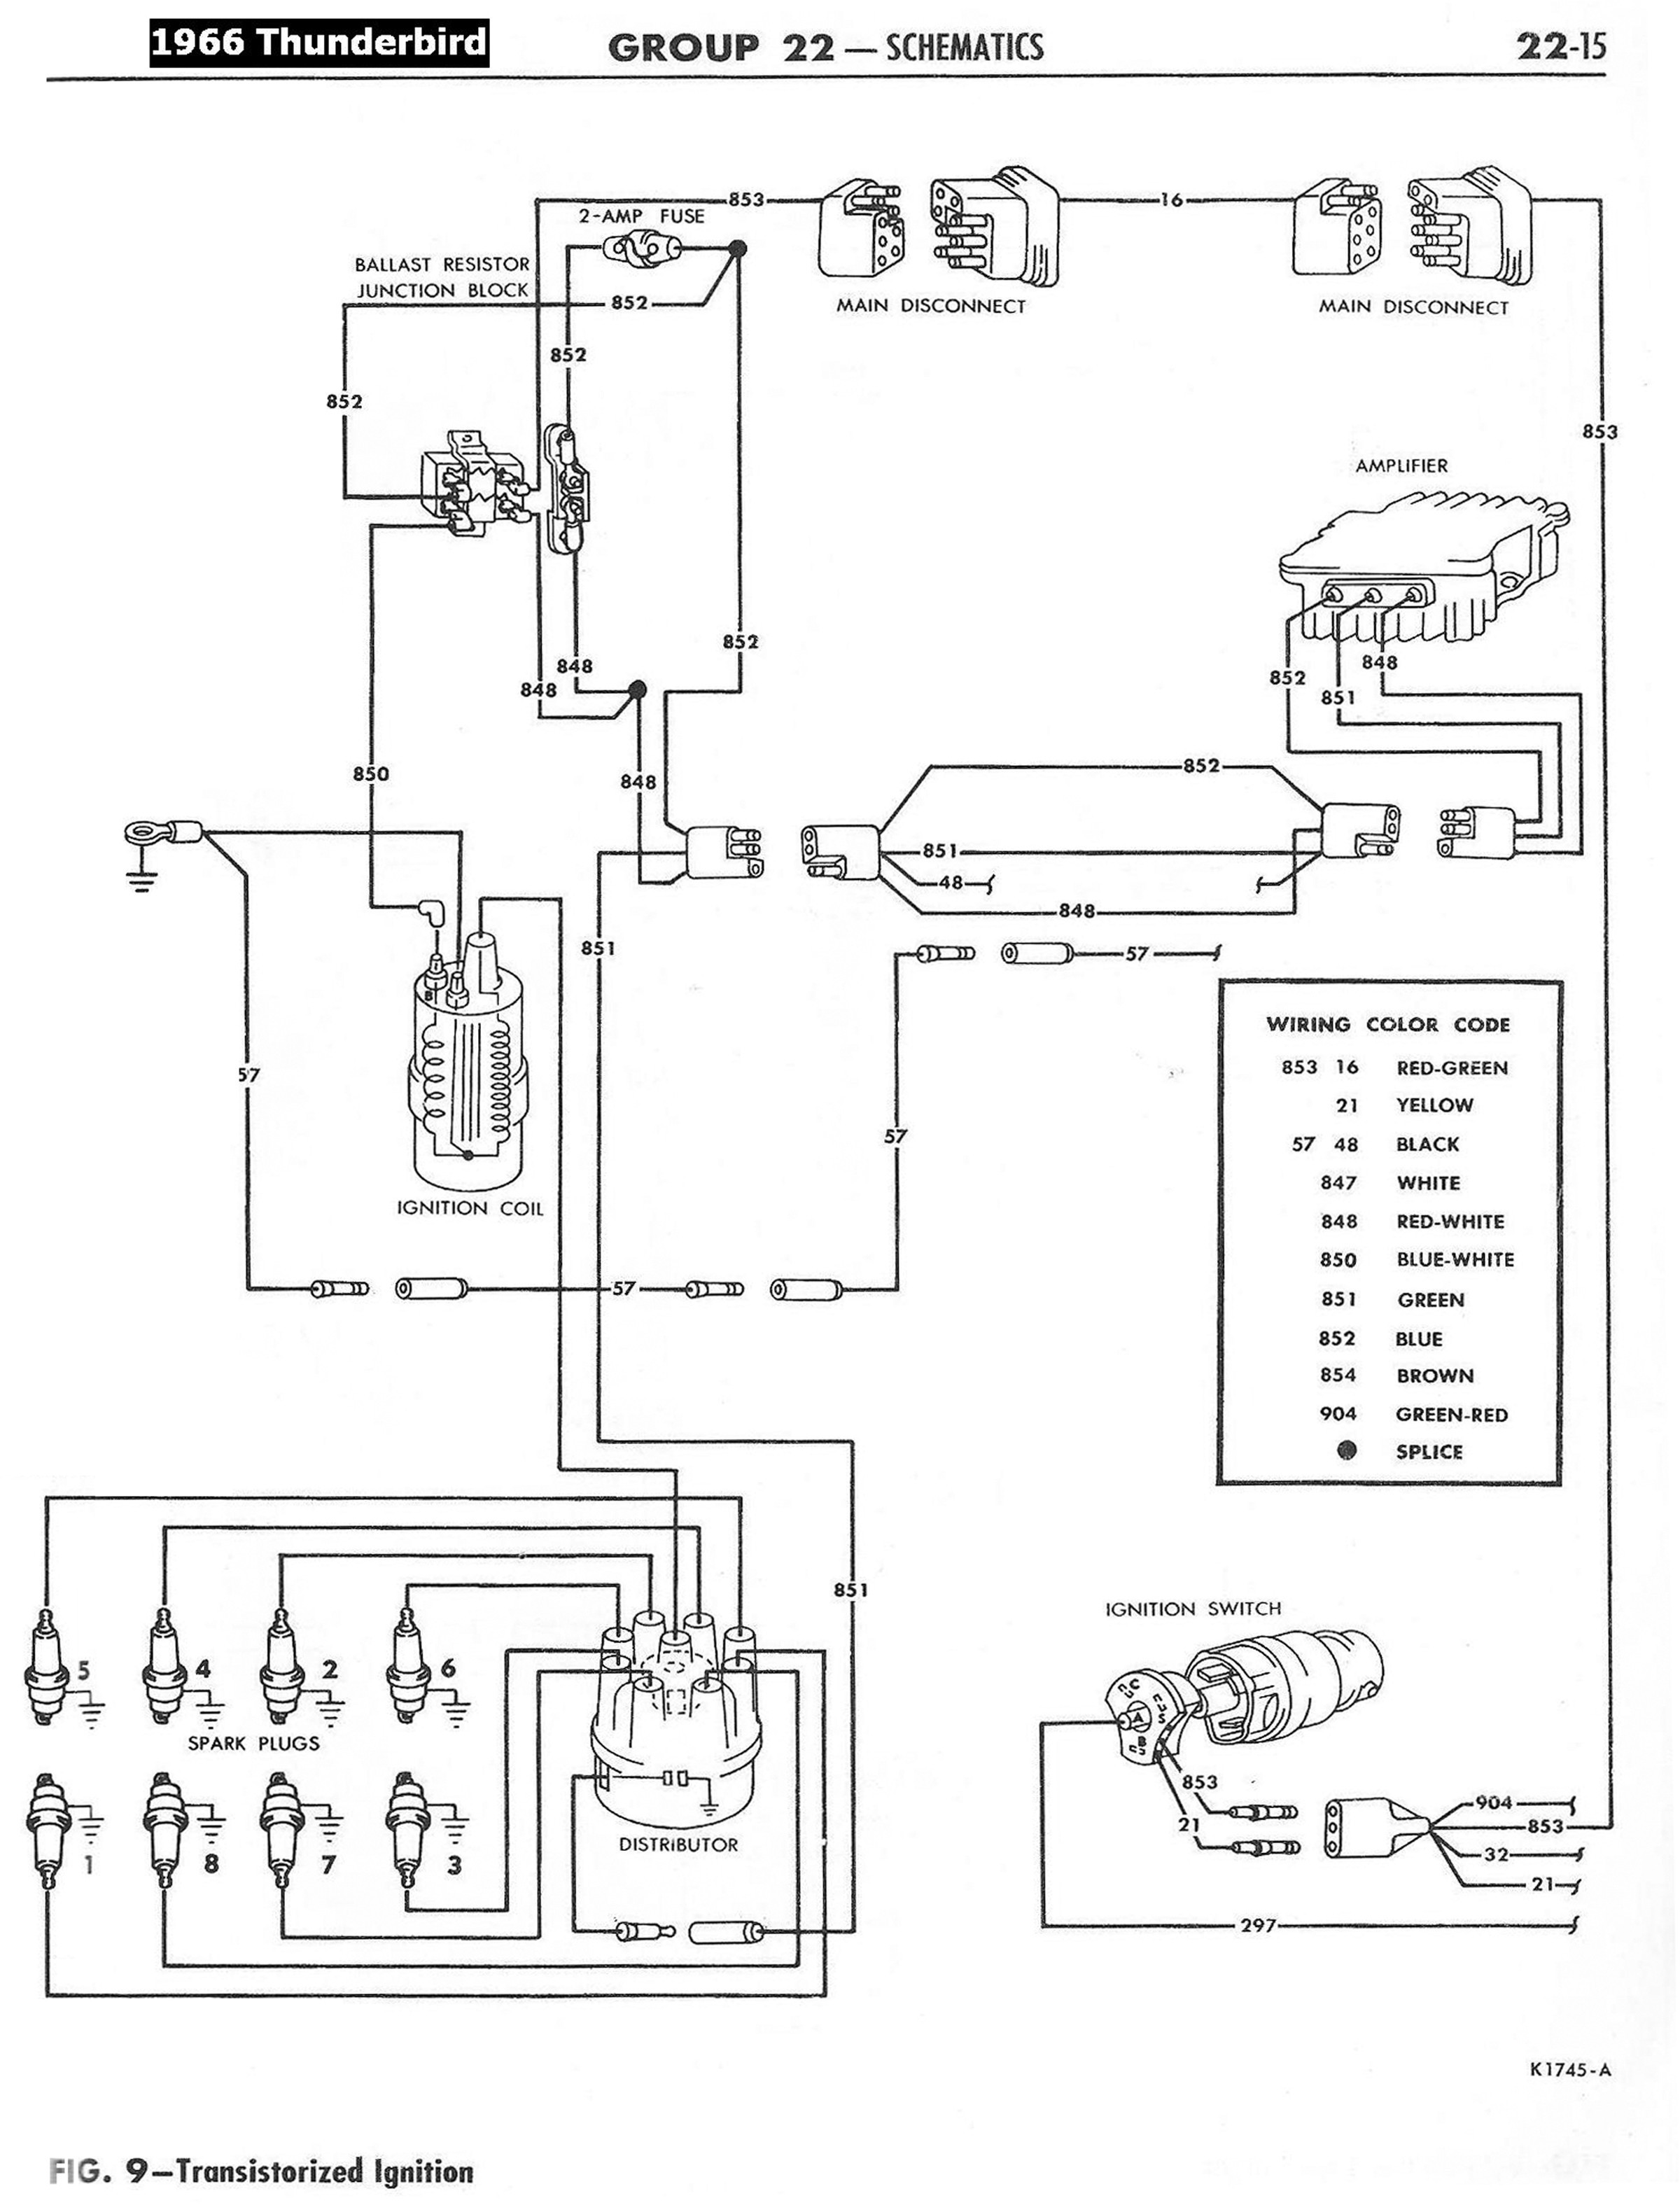 Car Ignition System Wiring Diagram Transistor Type Ignition